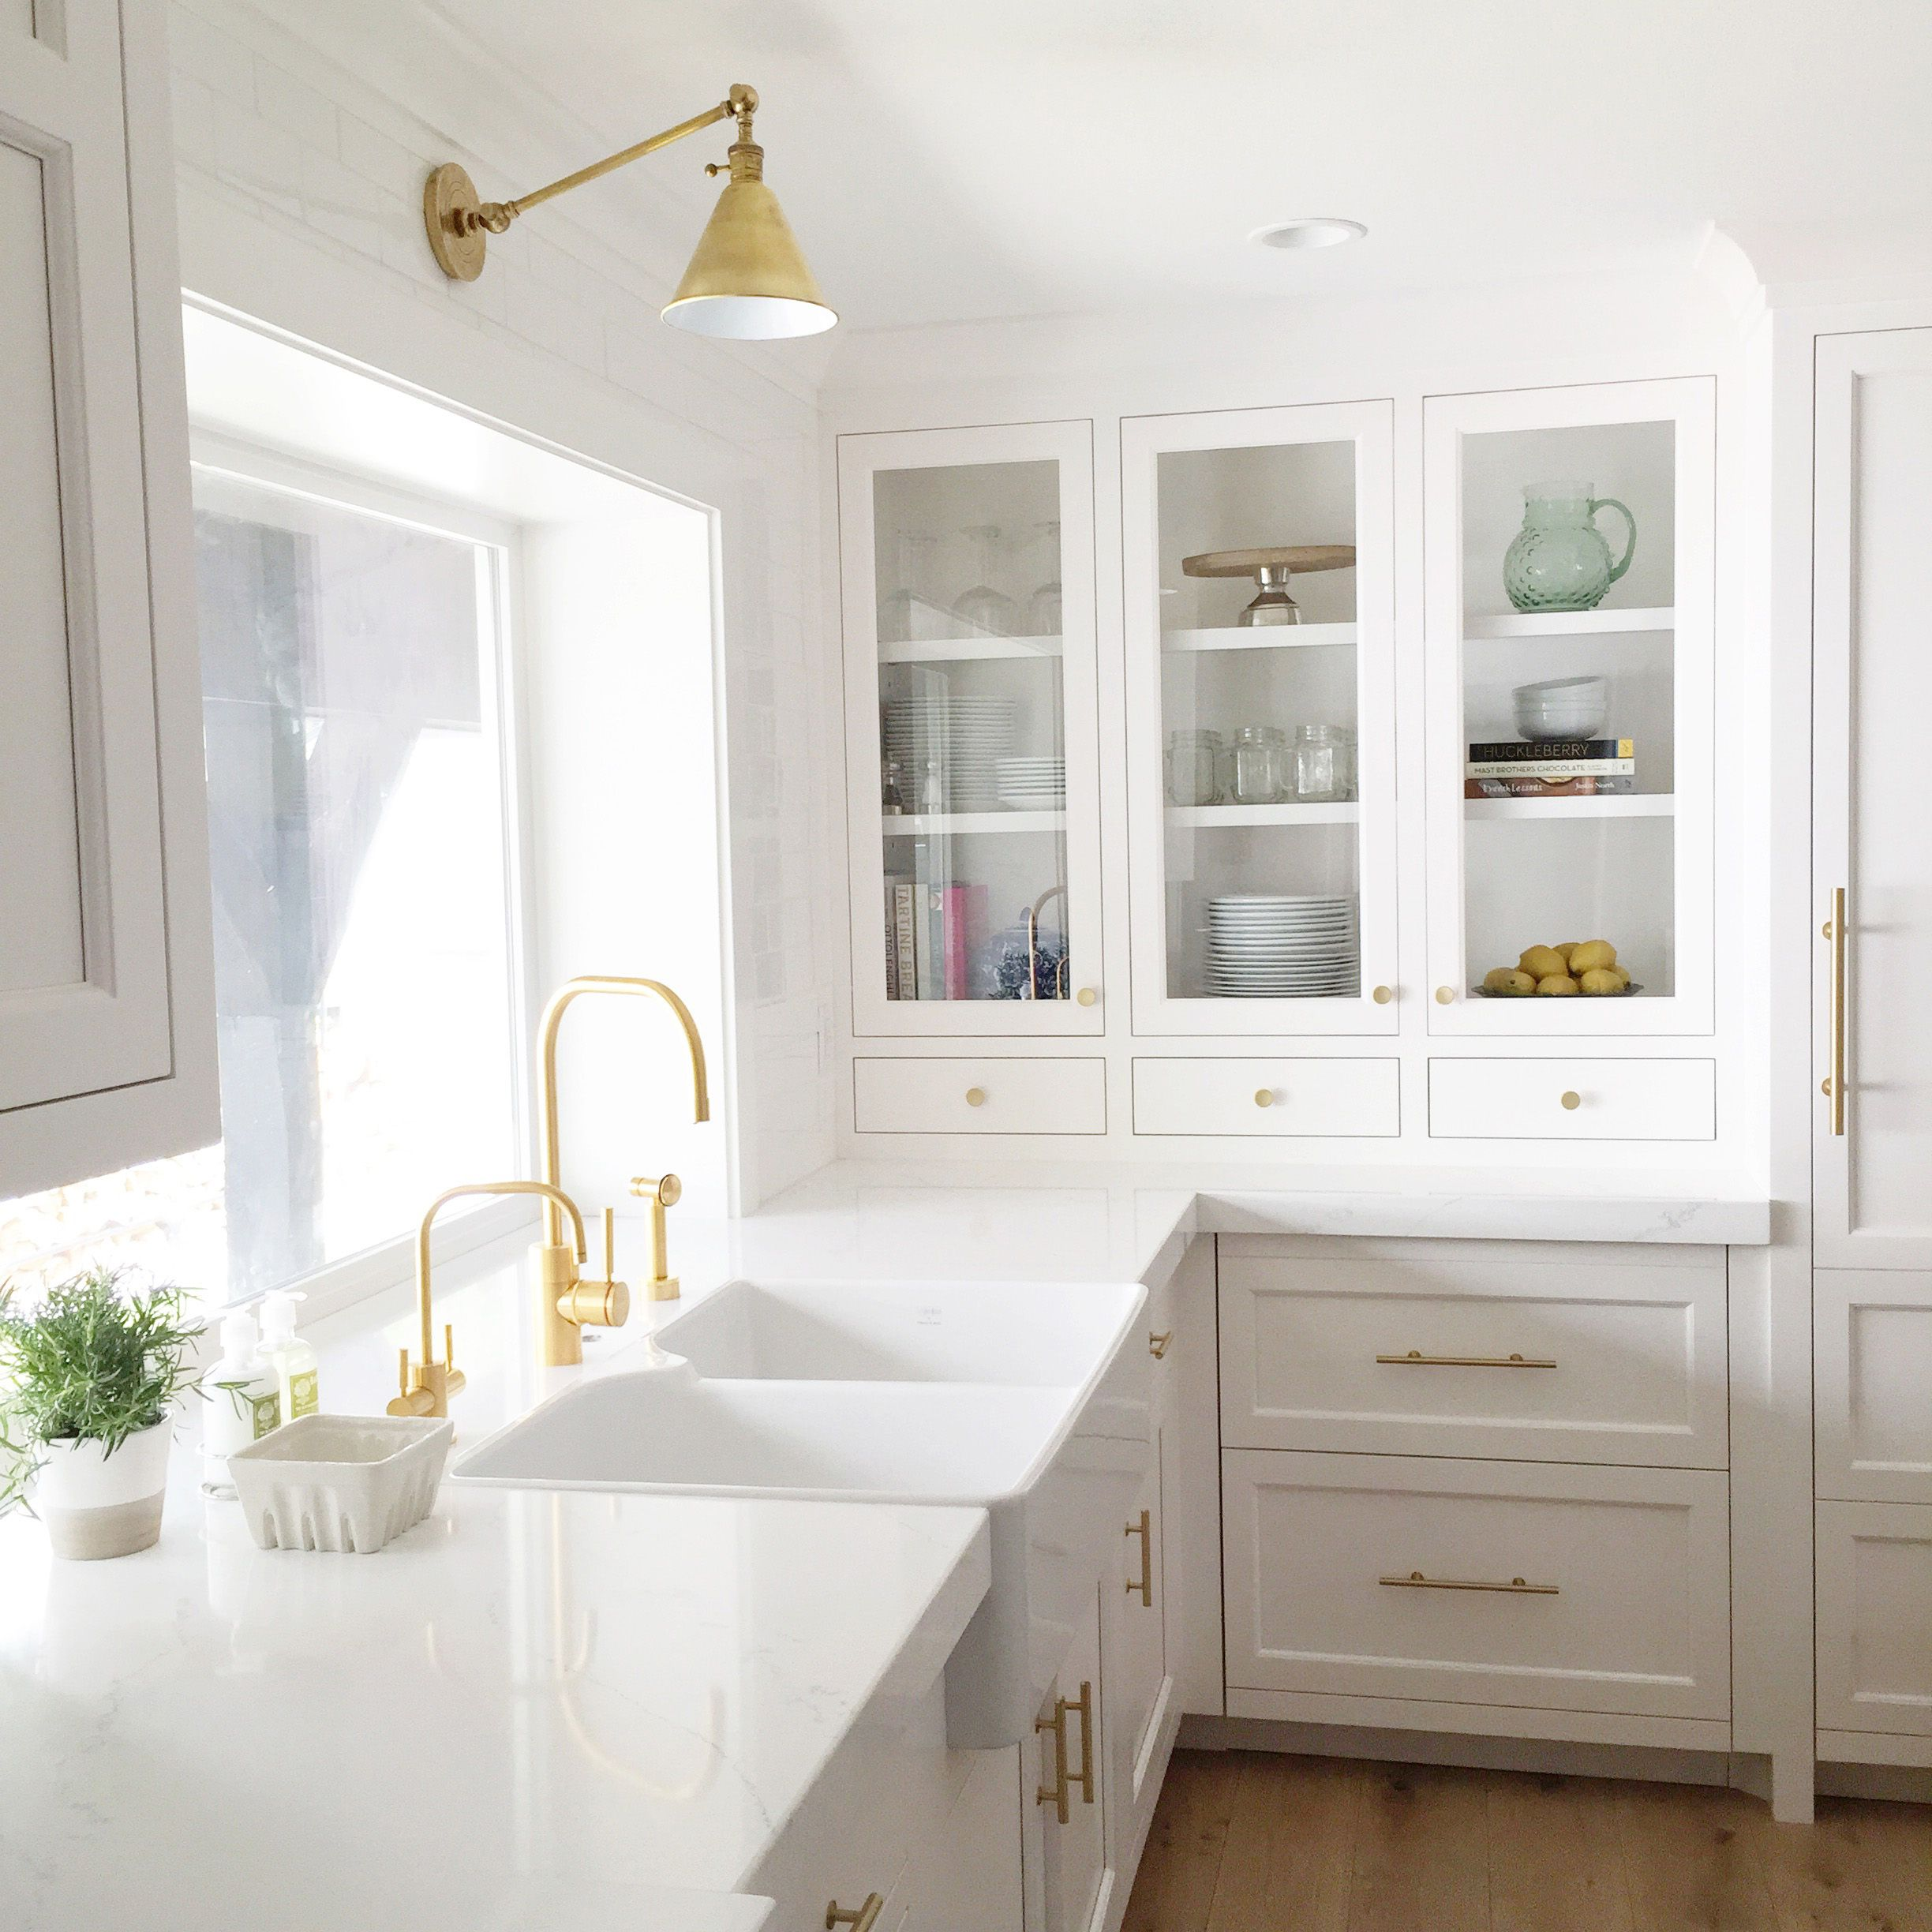 Install Day at our Robin Road Remodel | Gold kitchen, Studio mcgee ...